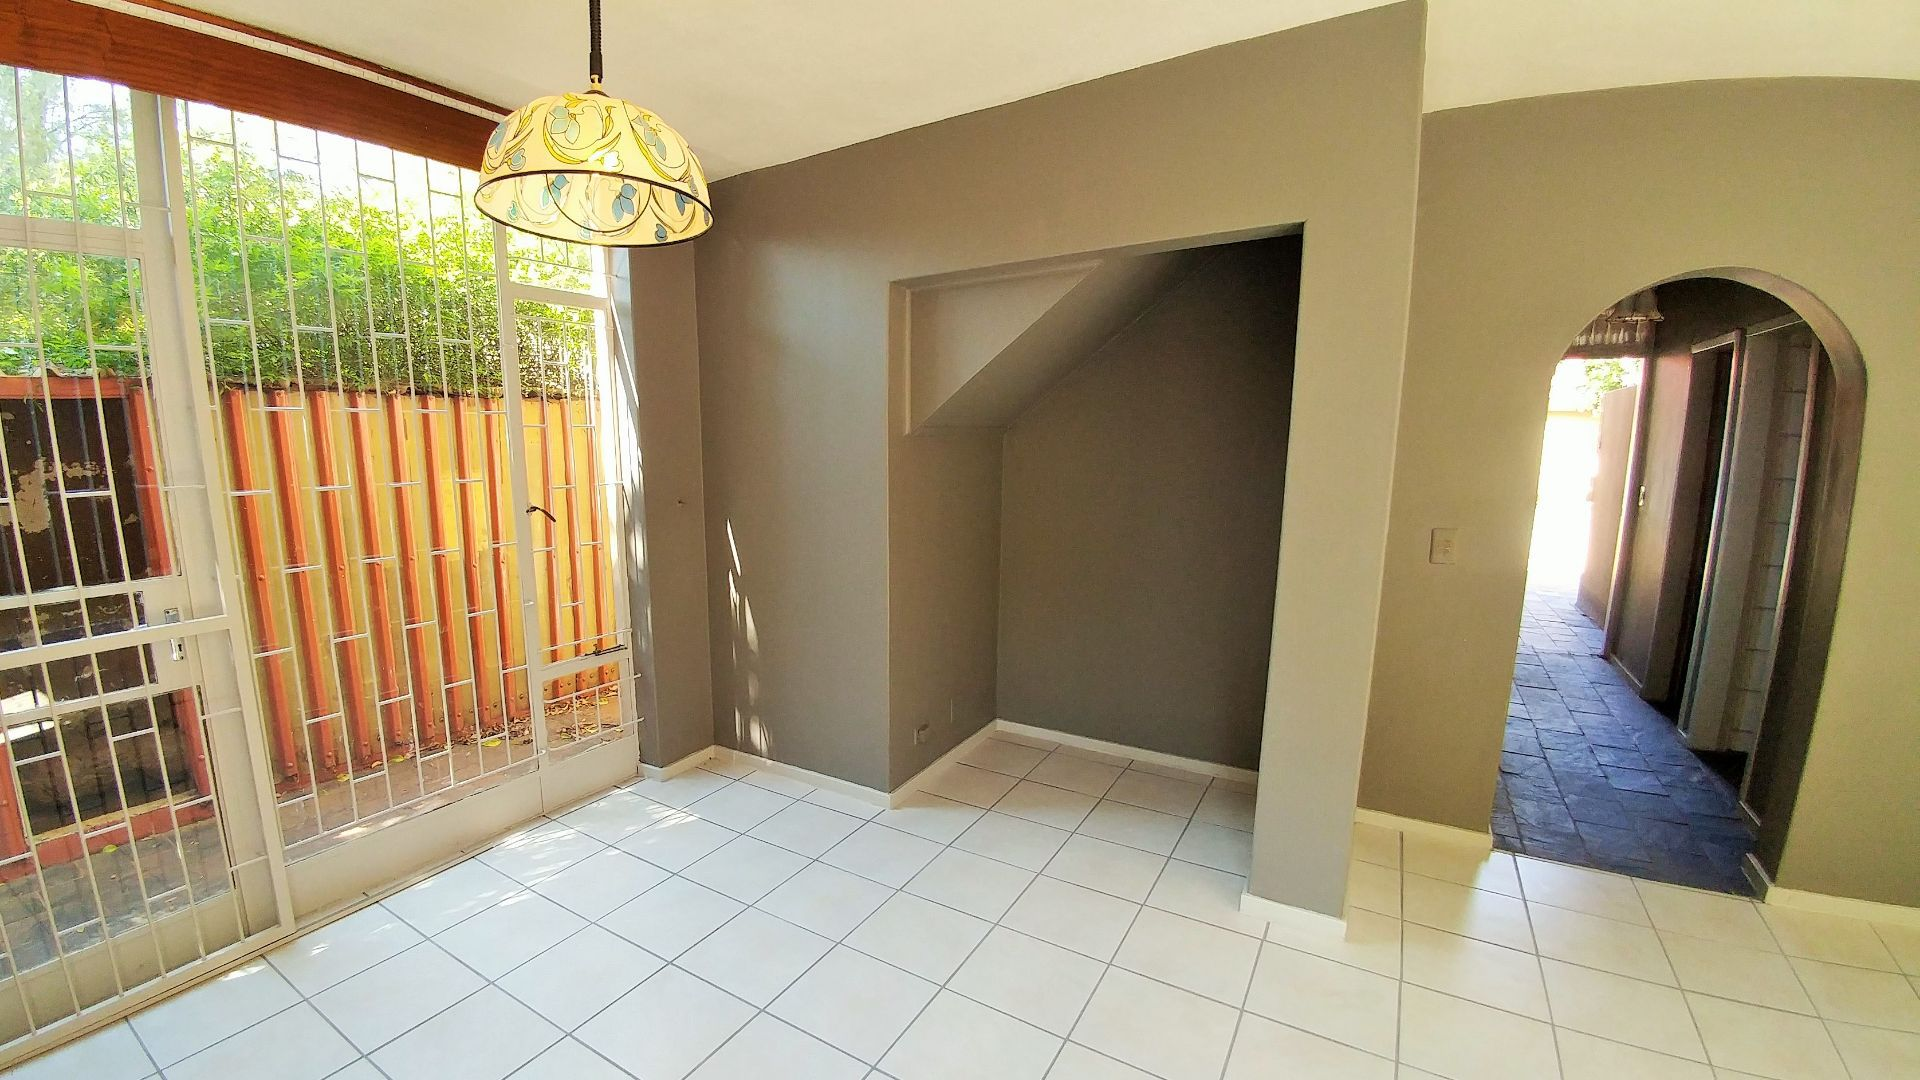 Potchefstroom Central property for sale. Ref No: 13547446. Picture no 11